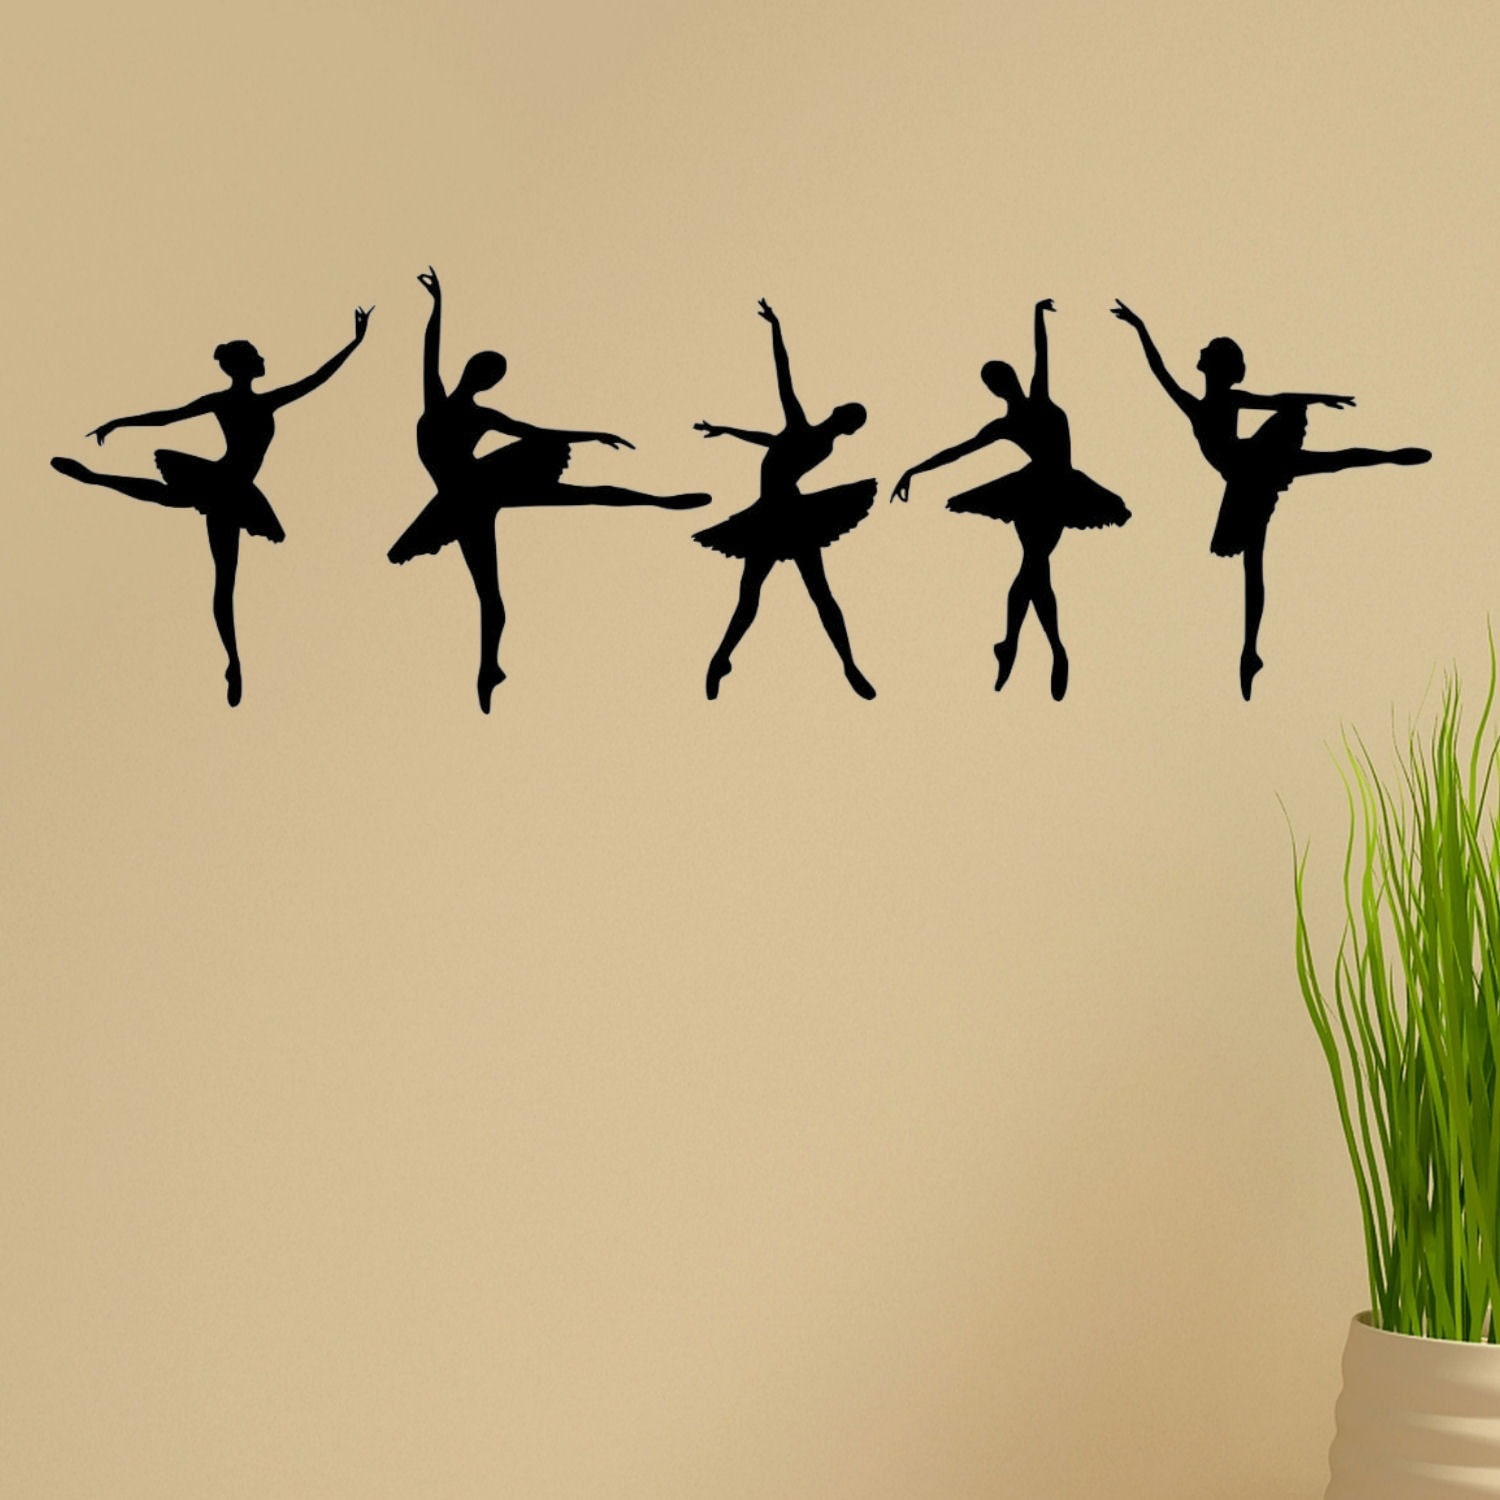 'Ballerina Dancers' Vinyl Wall Graphic Decal (Set of 5) Brown